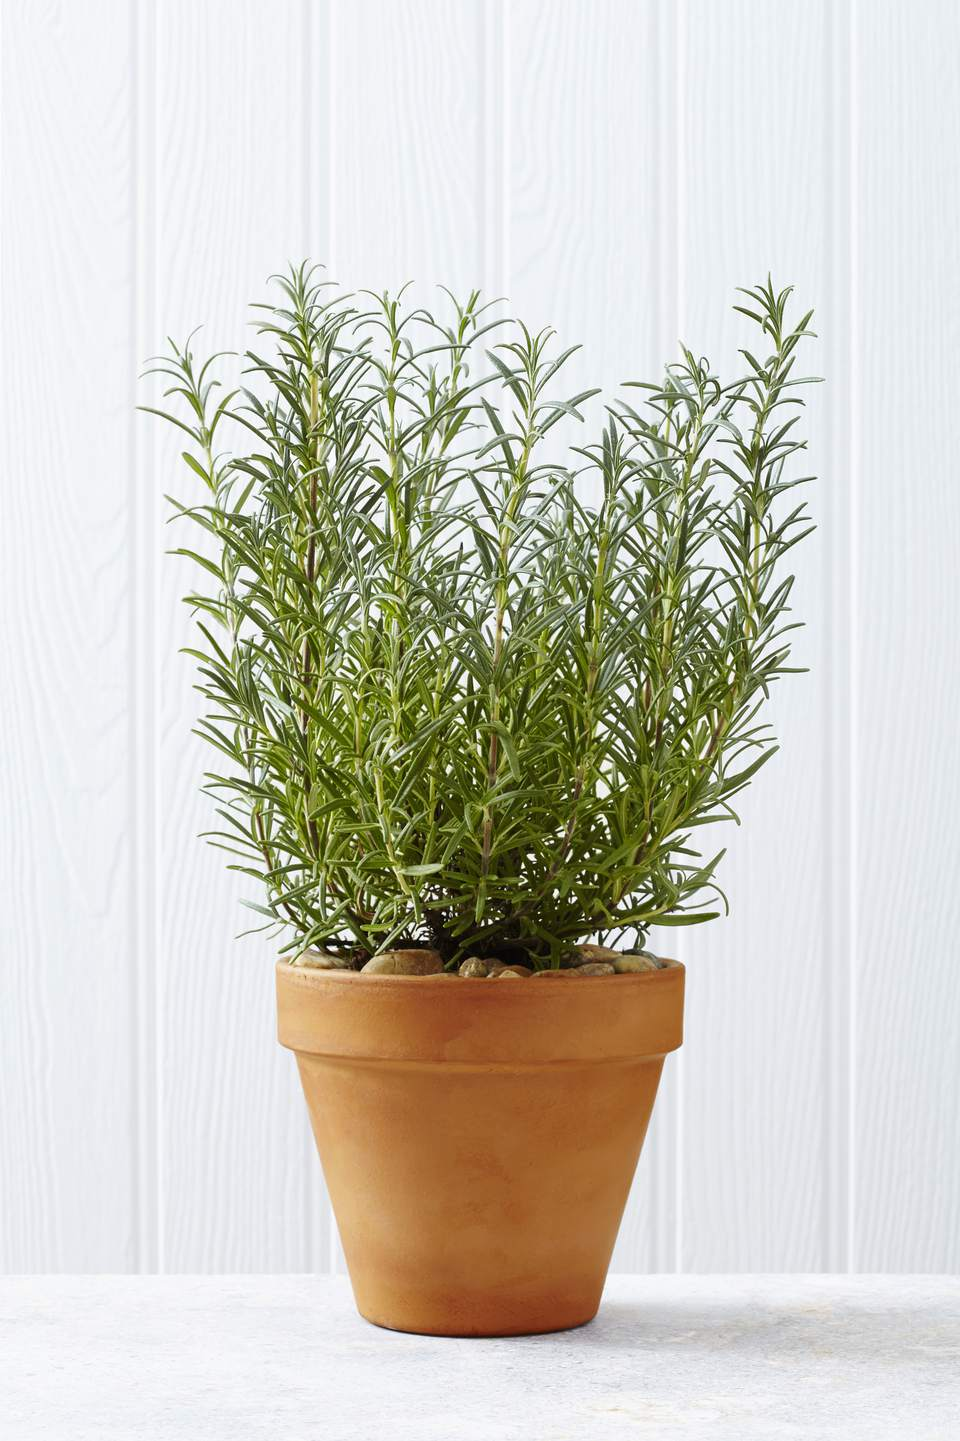 Rosemary is one of the popular plants of the herb garden, helps to fight the insects such as ants.